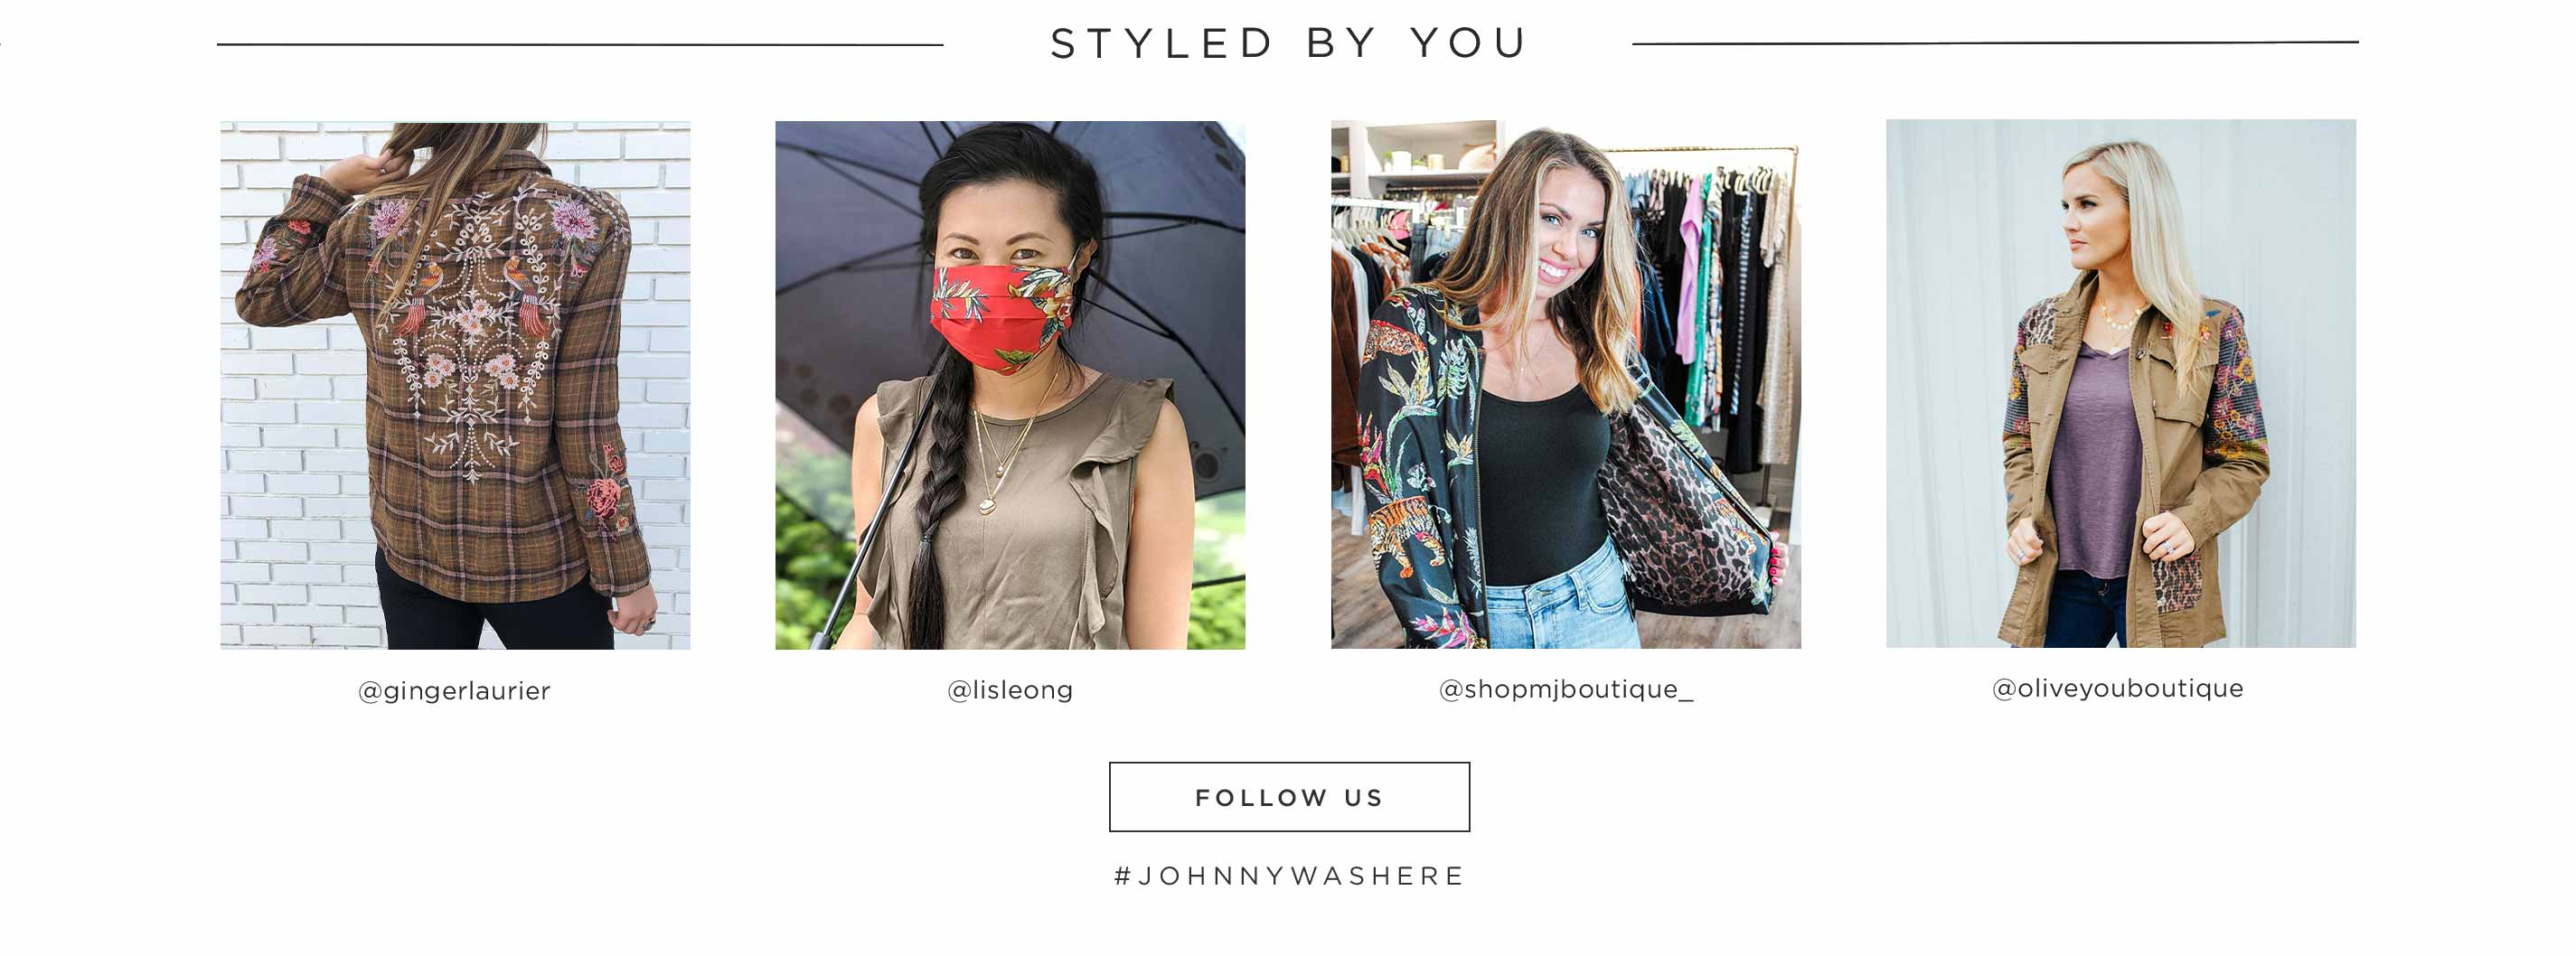 Styled by You - Follow Us - #JOHNNYWASHERE